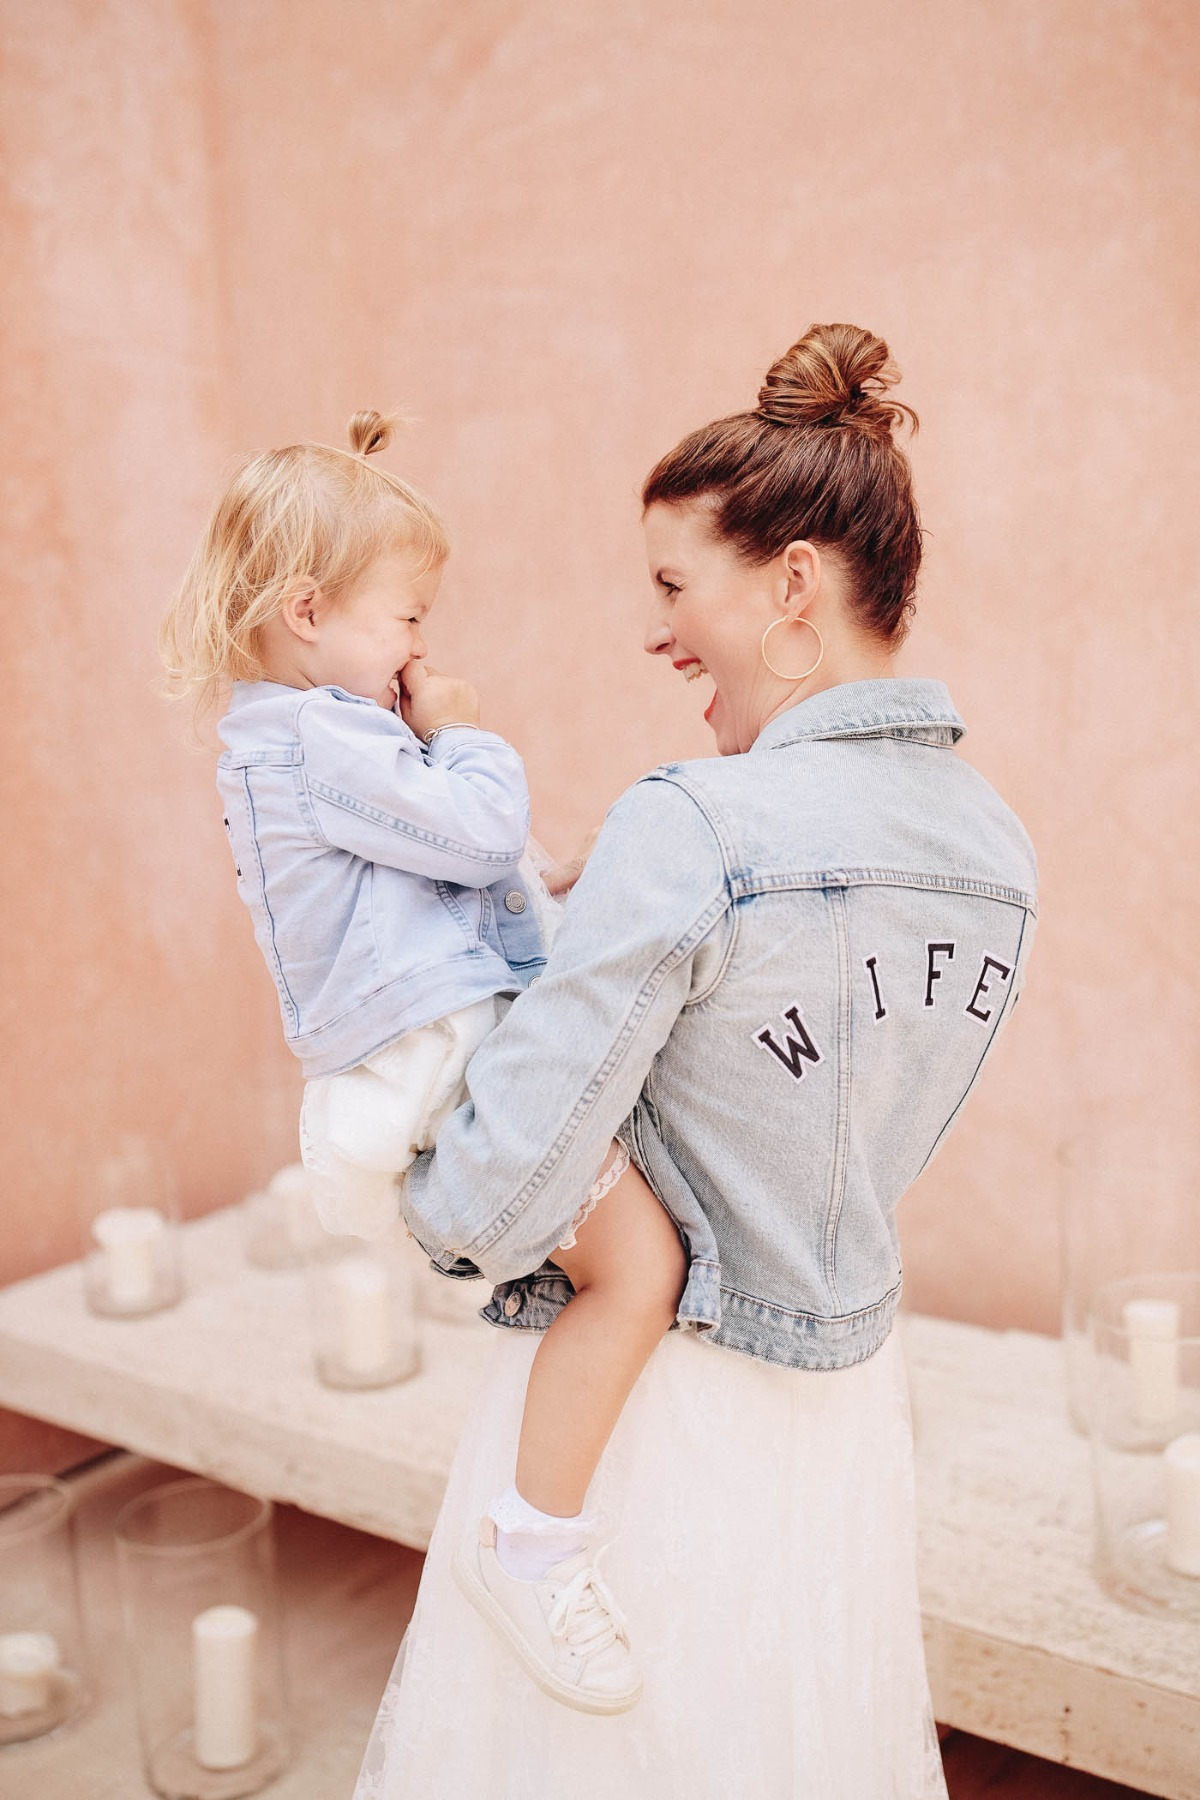 Mom and daughter in matching jean jackets